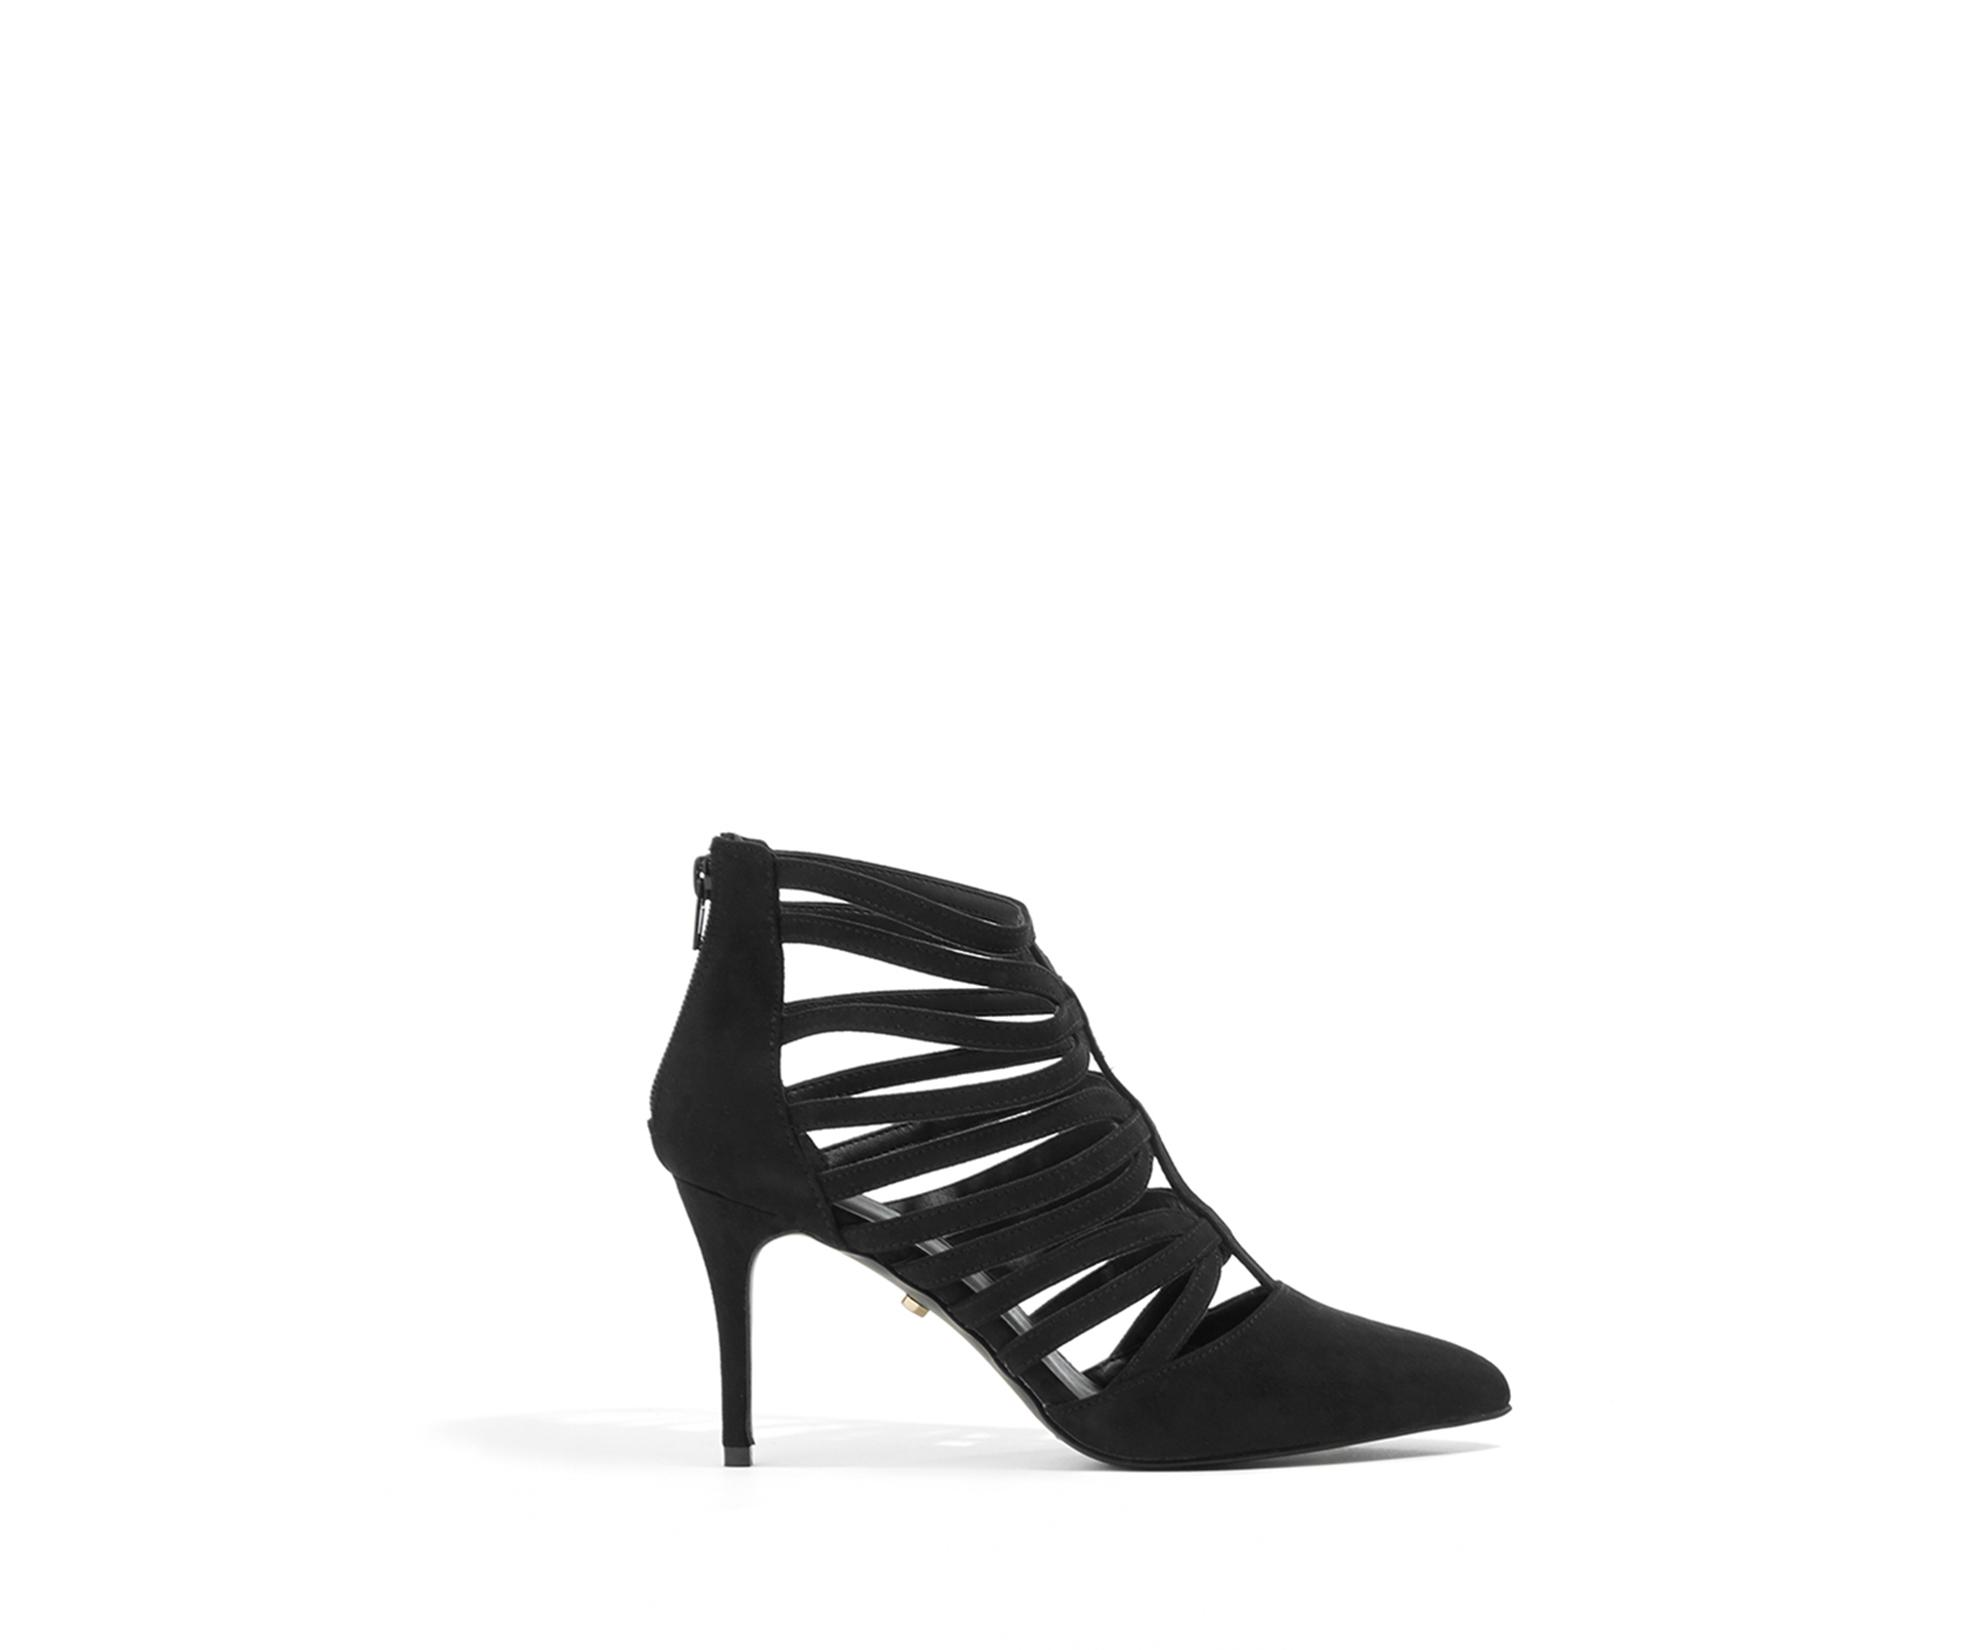 ff9d06a95d0 Lyst - Oasis Carla Caged Shoe in Black